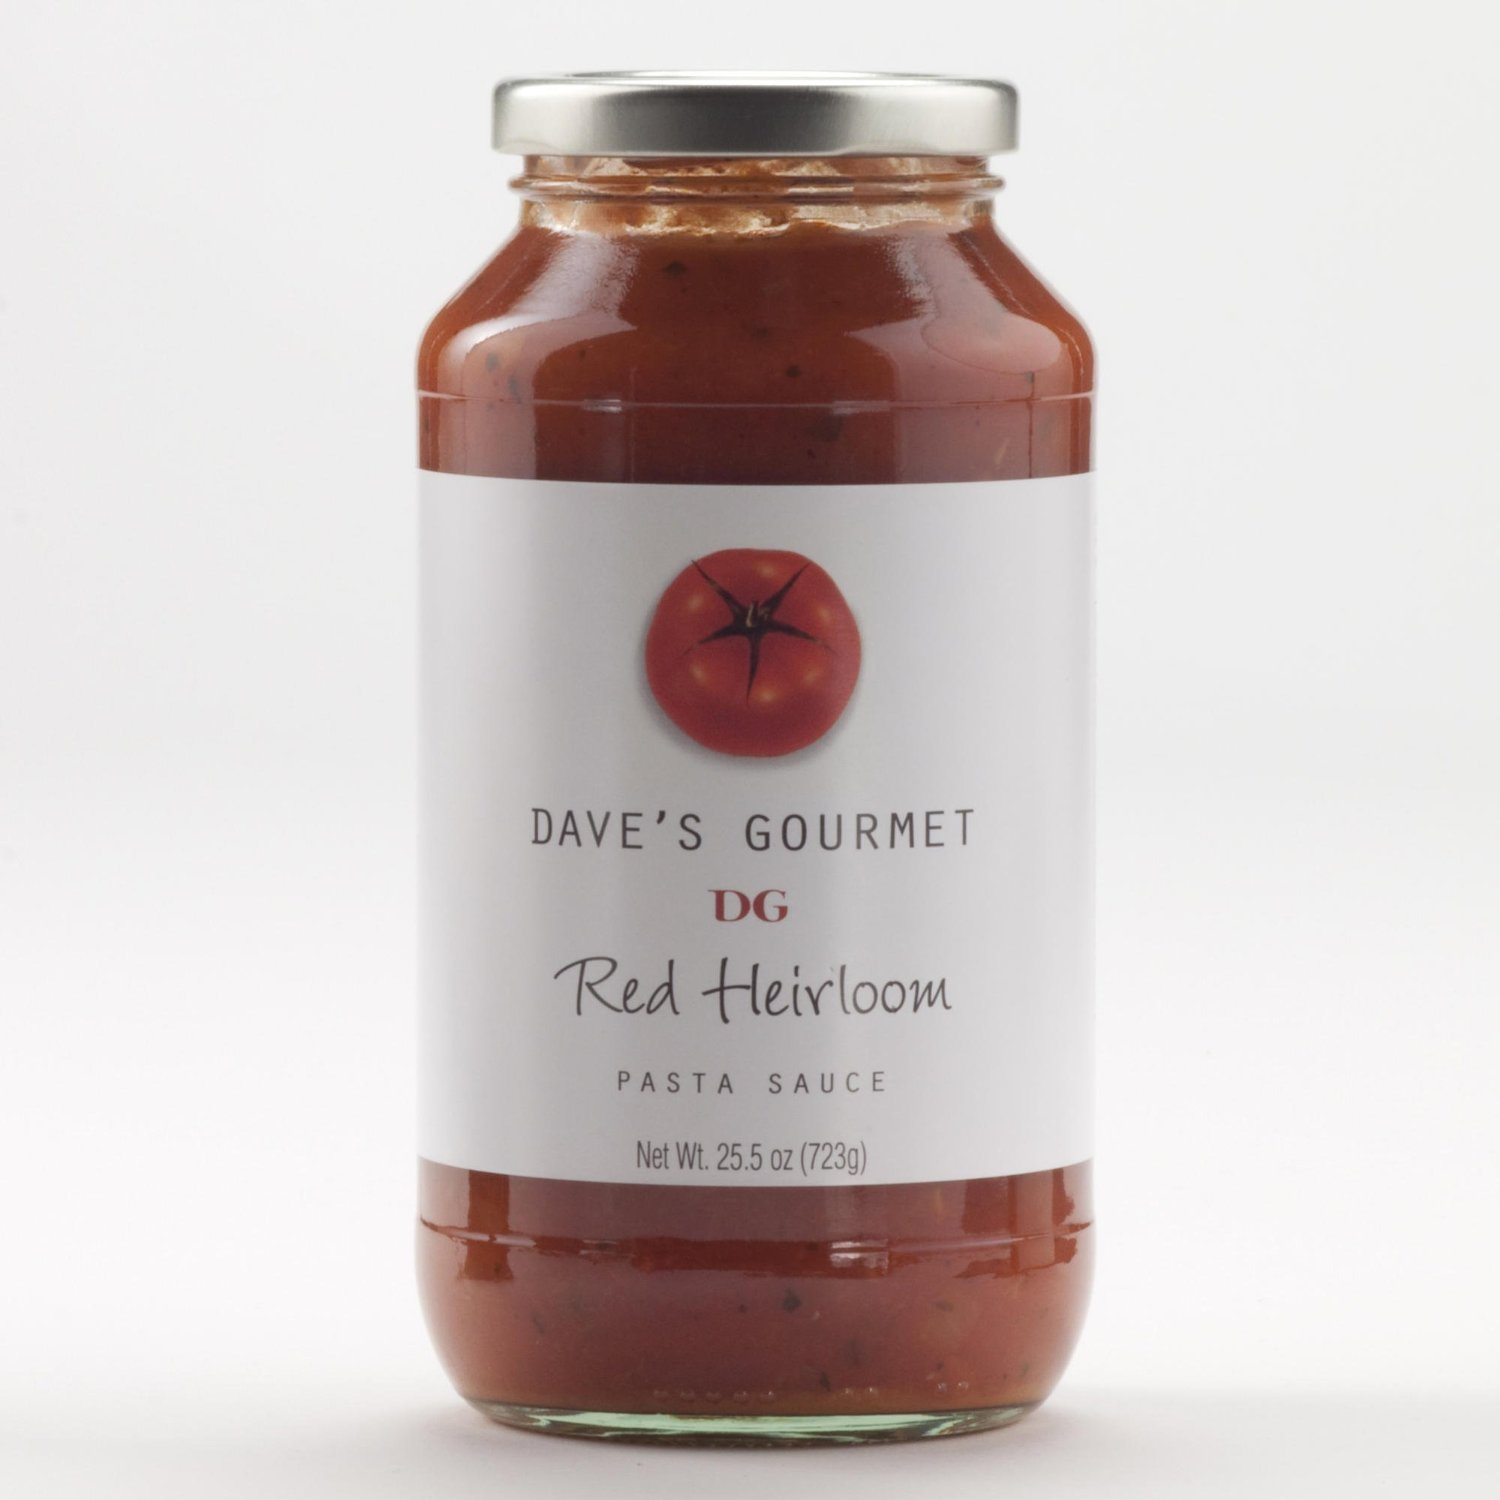 Daves Gourmet Sauce Psta Red Heirloom Org